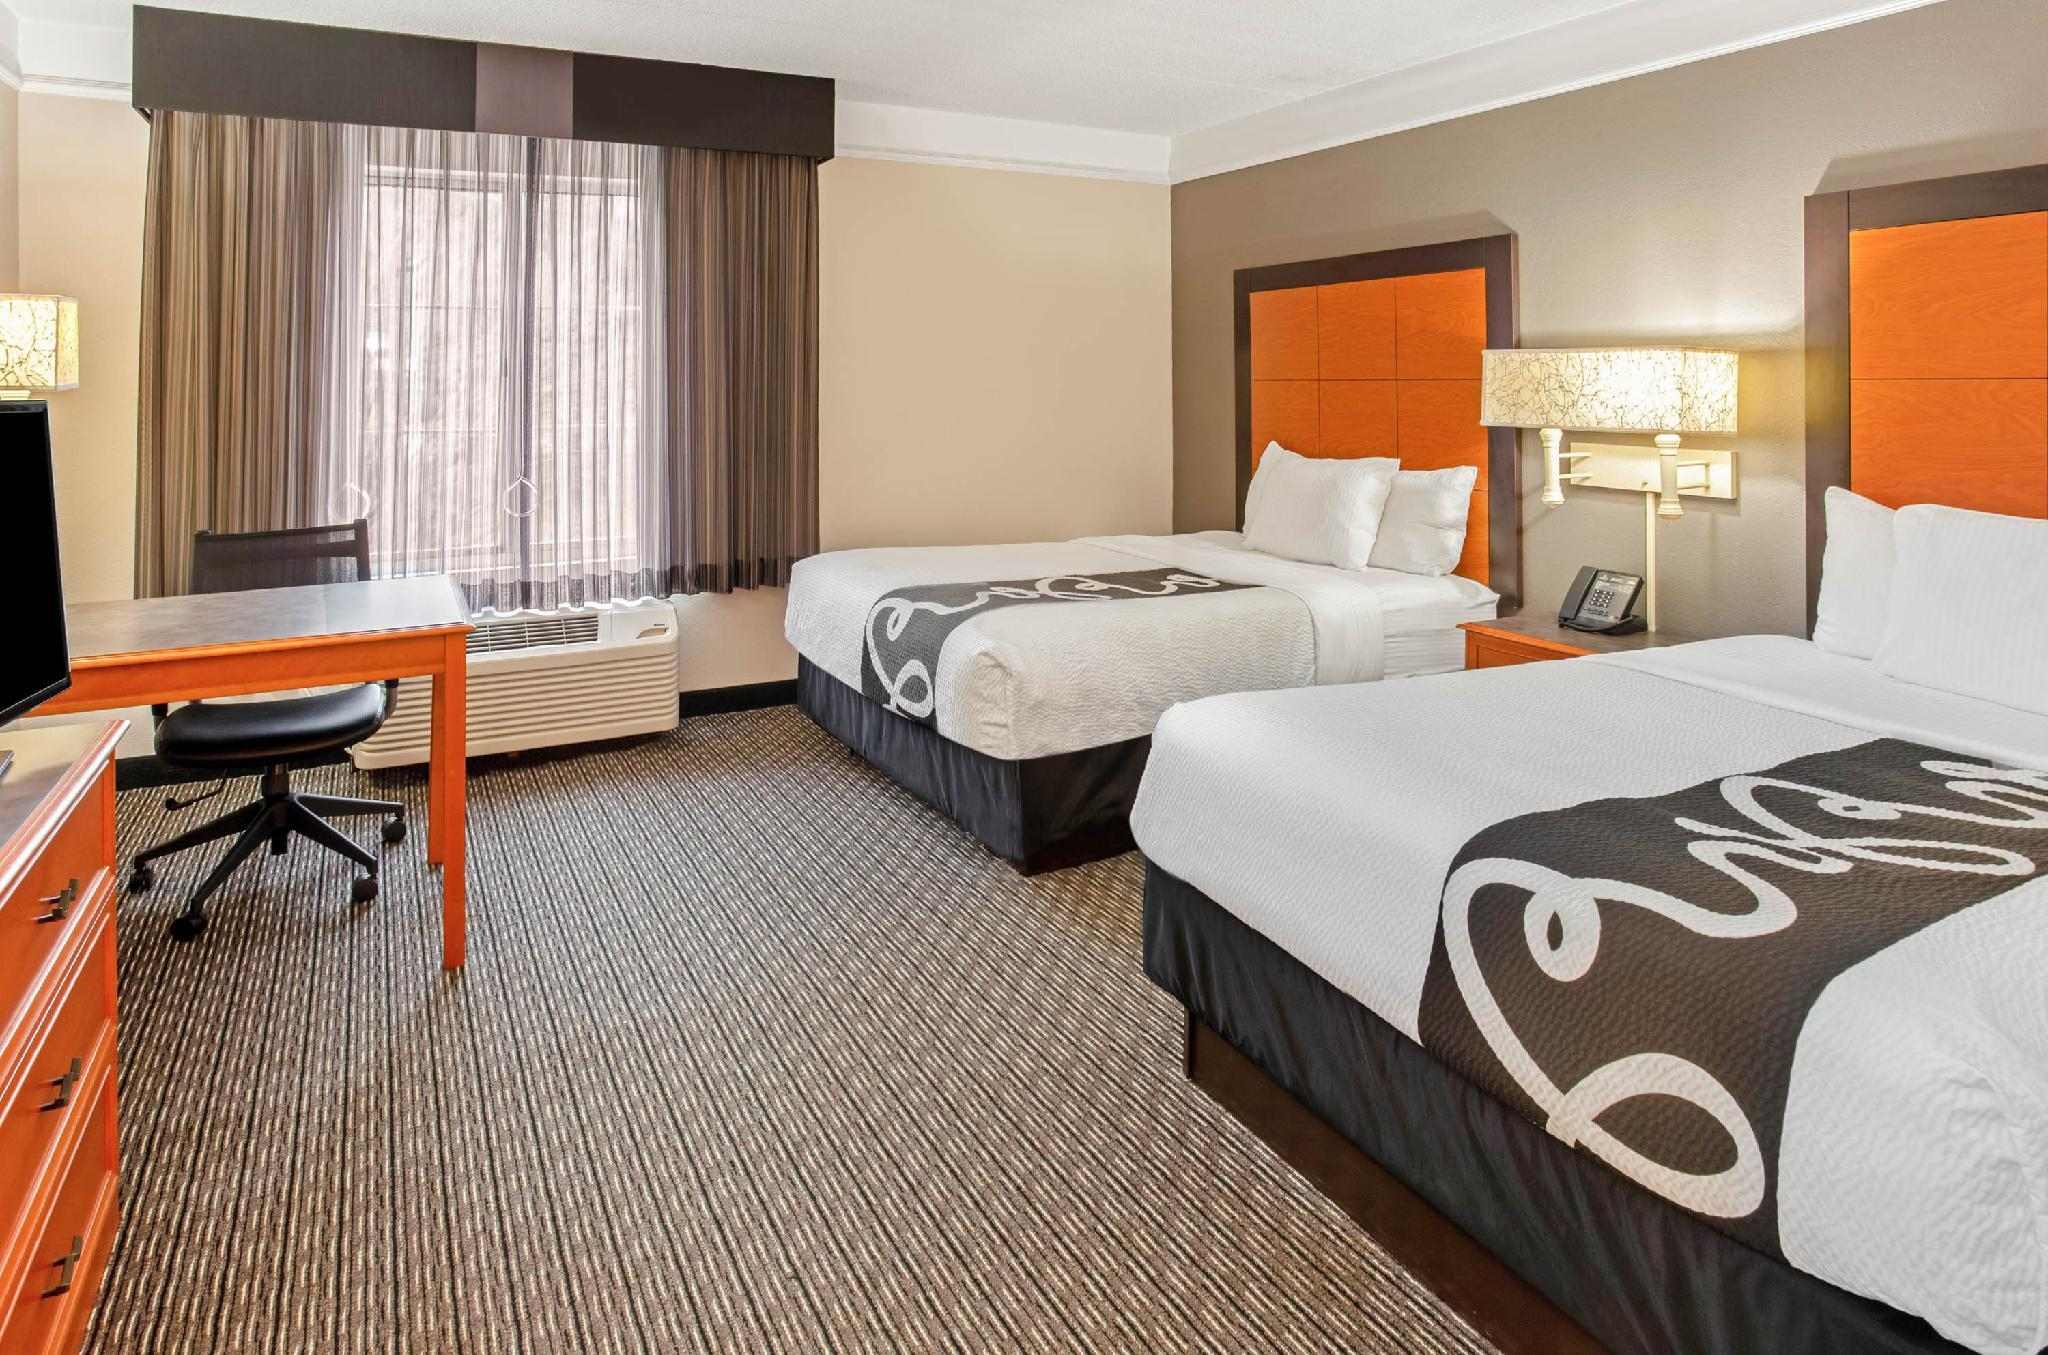 2 Twin Beds, Mobility/Hearing Impaired Accessible Room, Non-Smoking